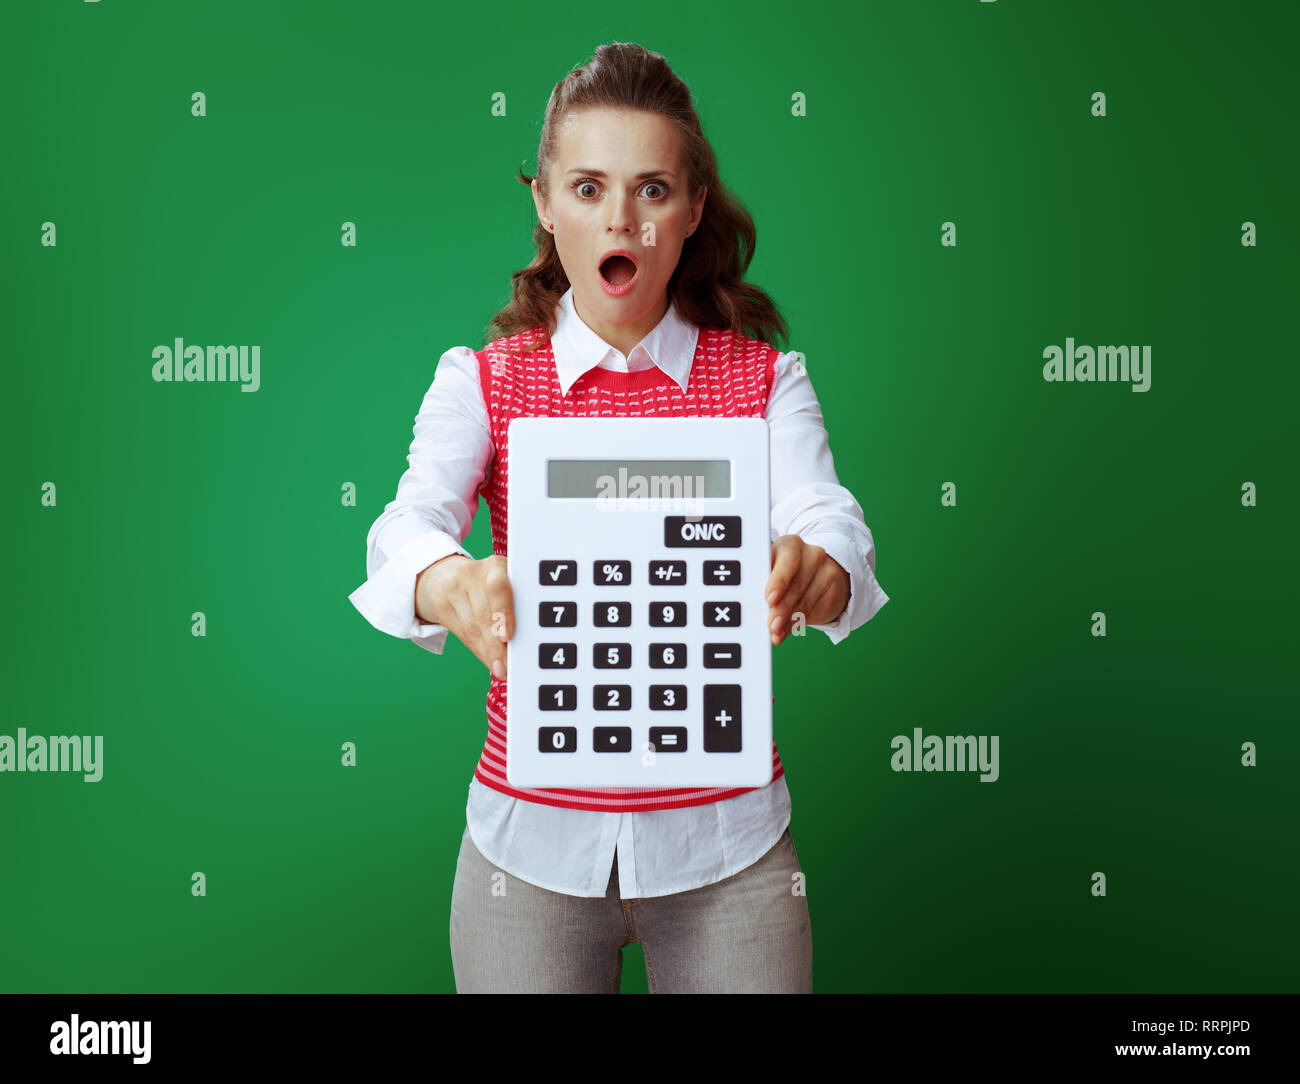 shocked fit student in grey jeans and pink sleeveless shirt showing big white calculator isolated on chalkboard green. Financial challenges and expend Stock Photo